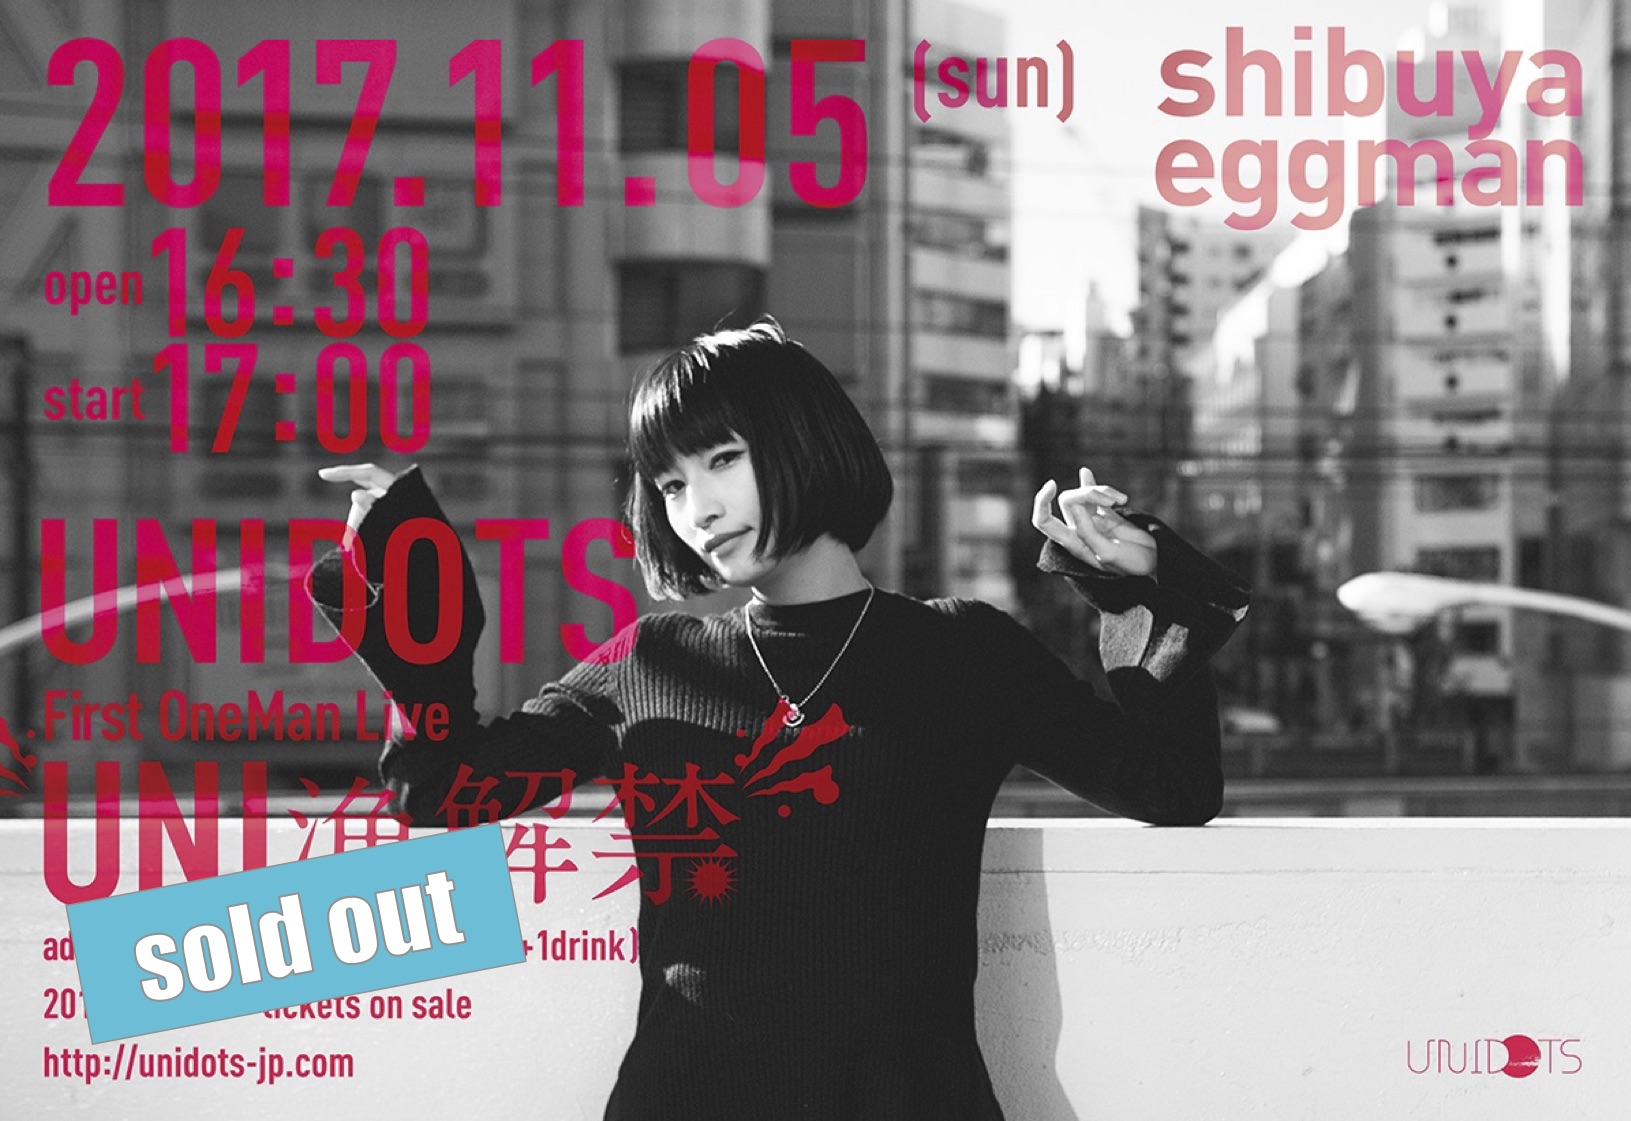 ※※※ SOLD OUT! ※※※ first oneman live -UNI漁解禁-